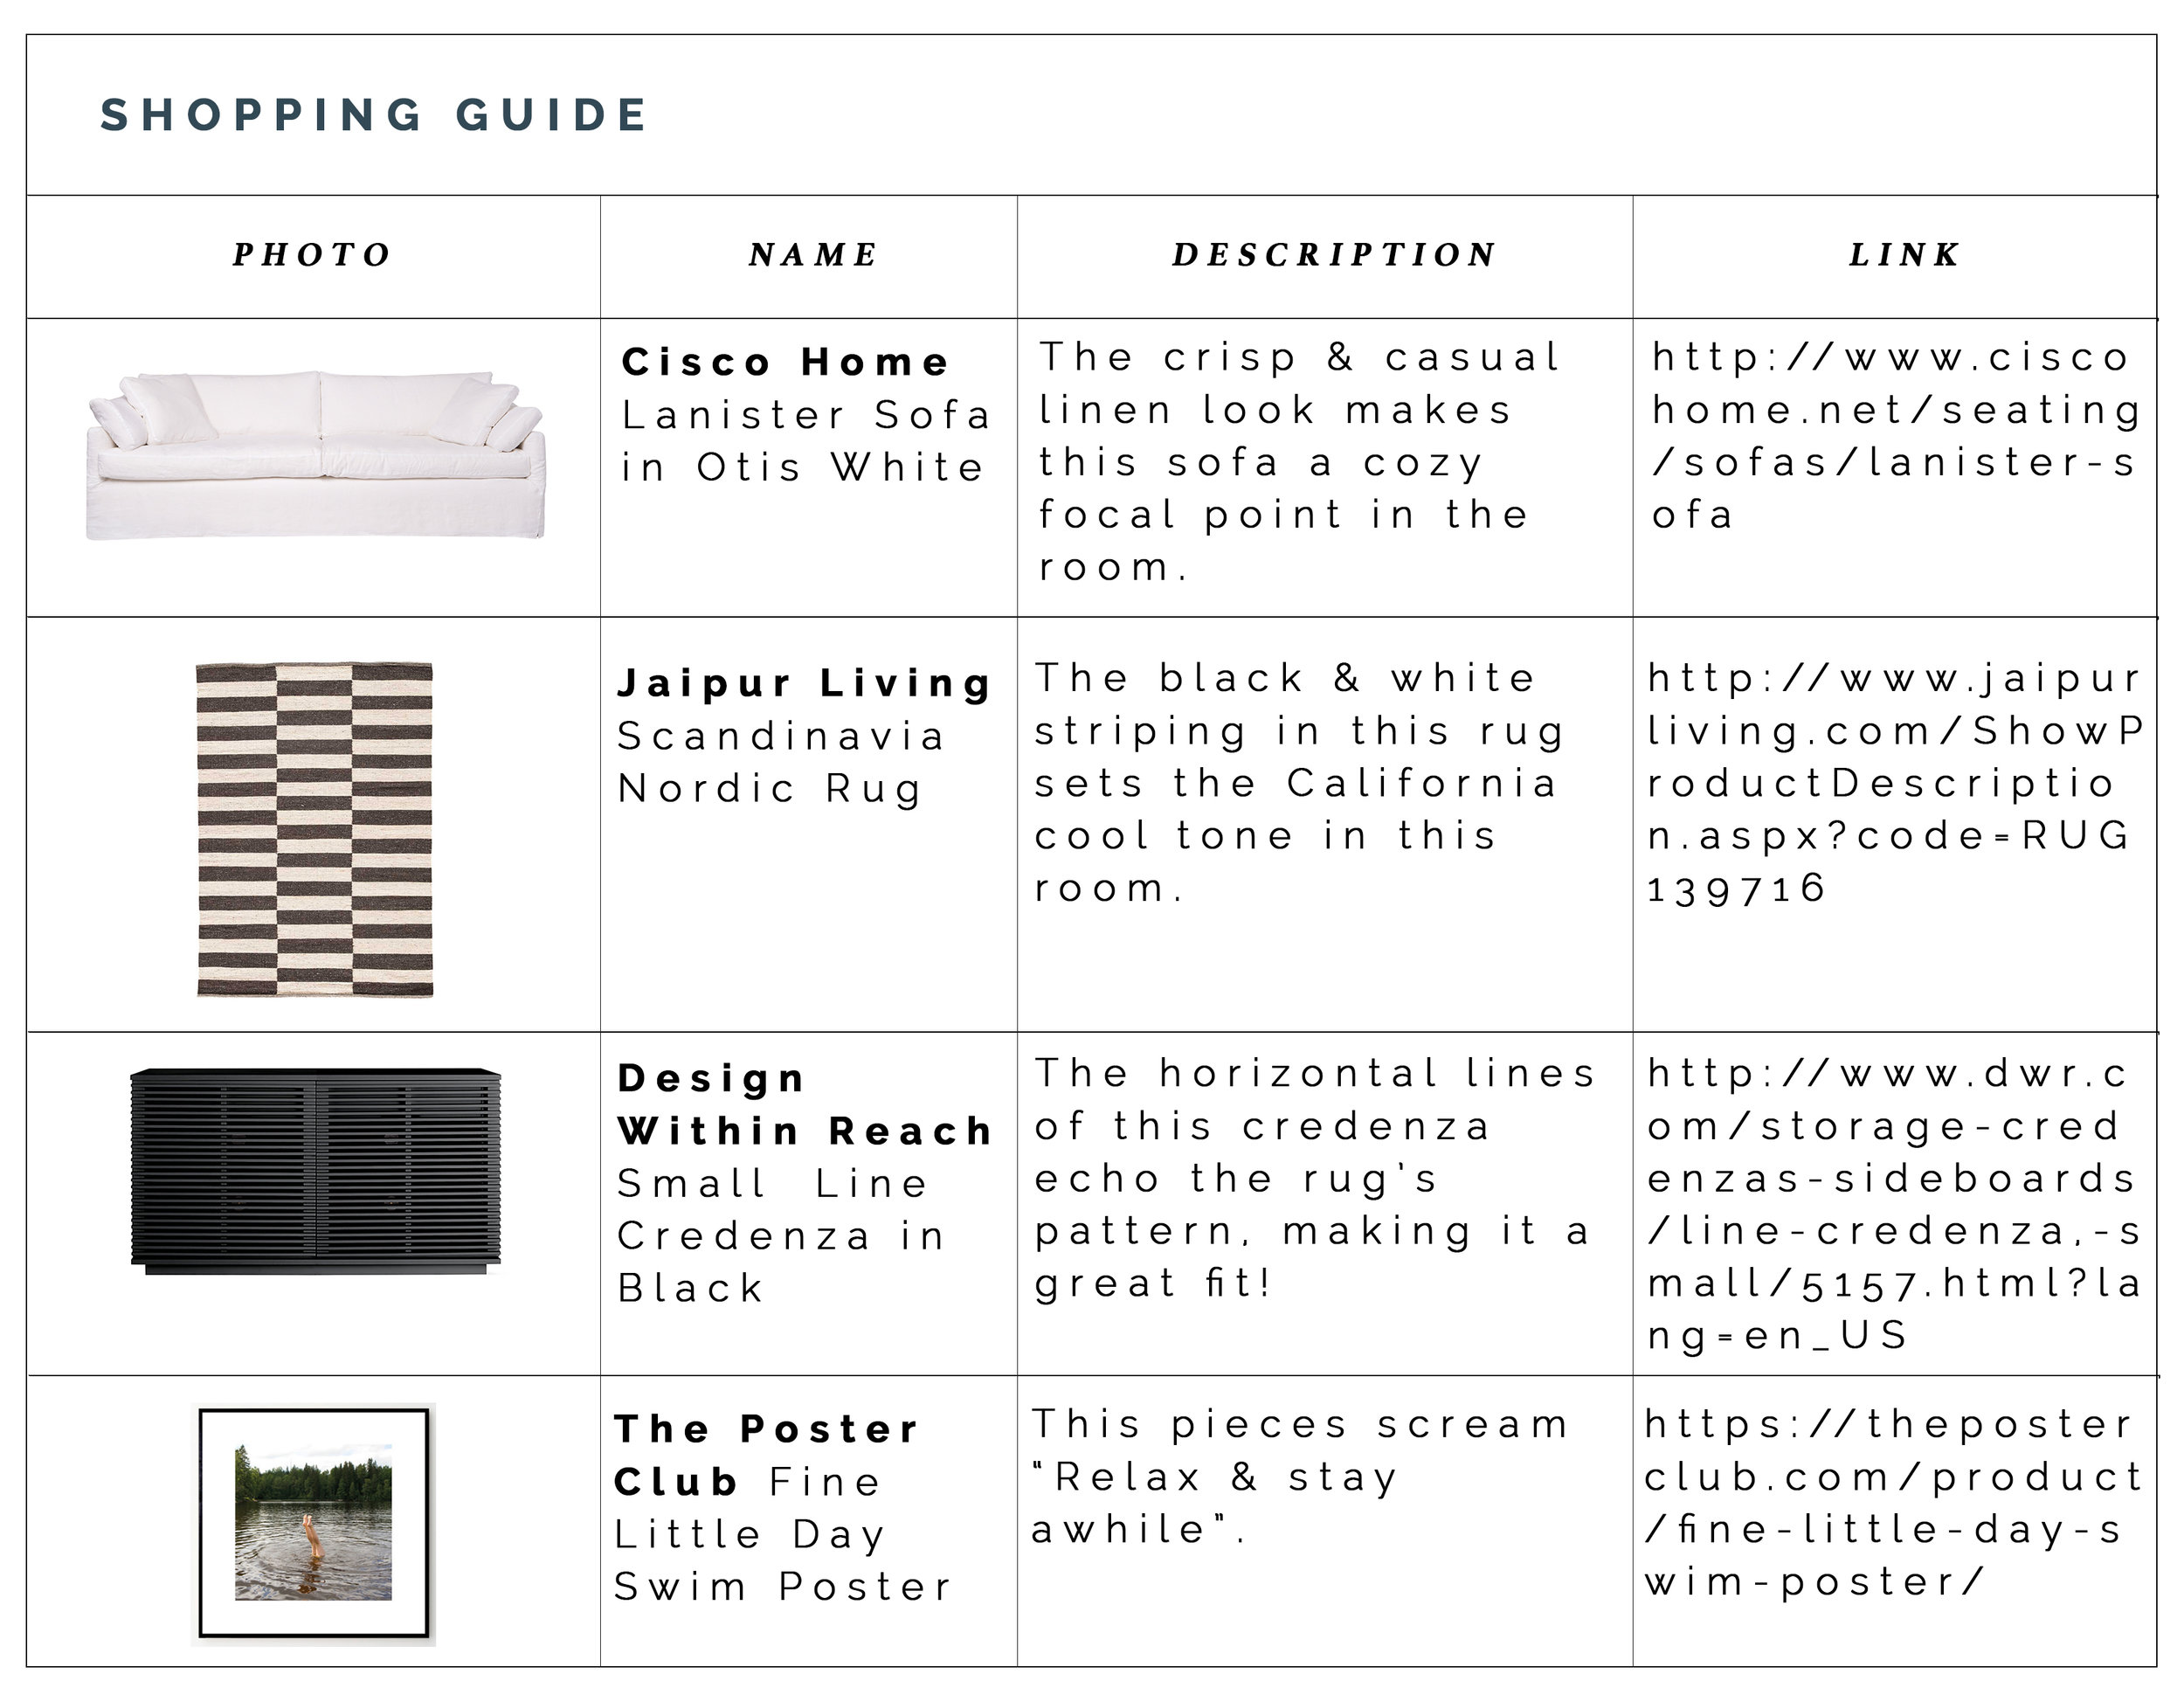 Curated shopping guide